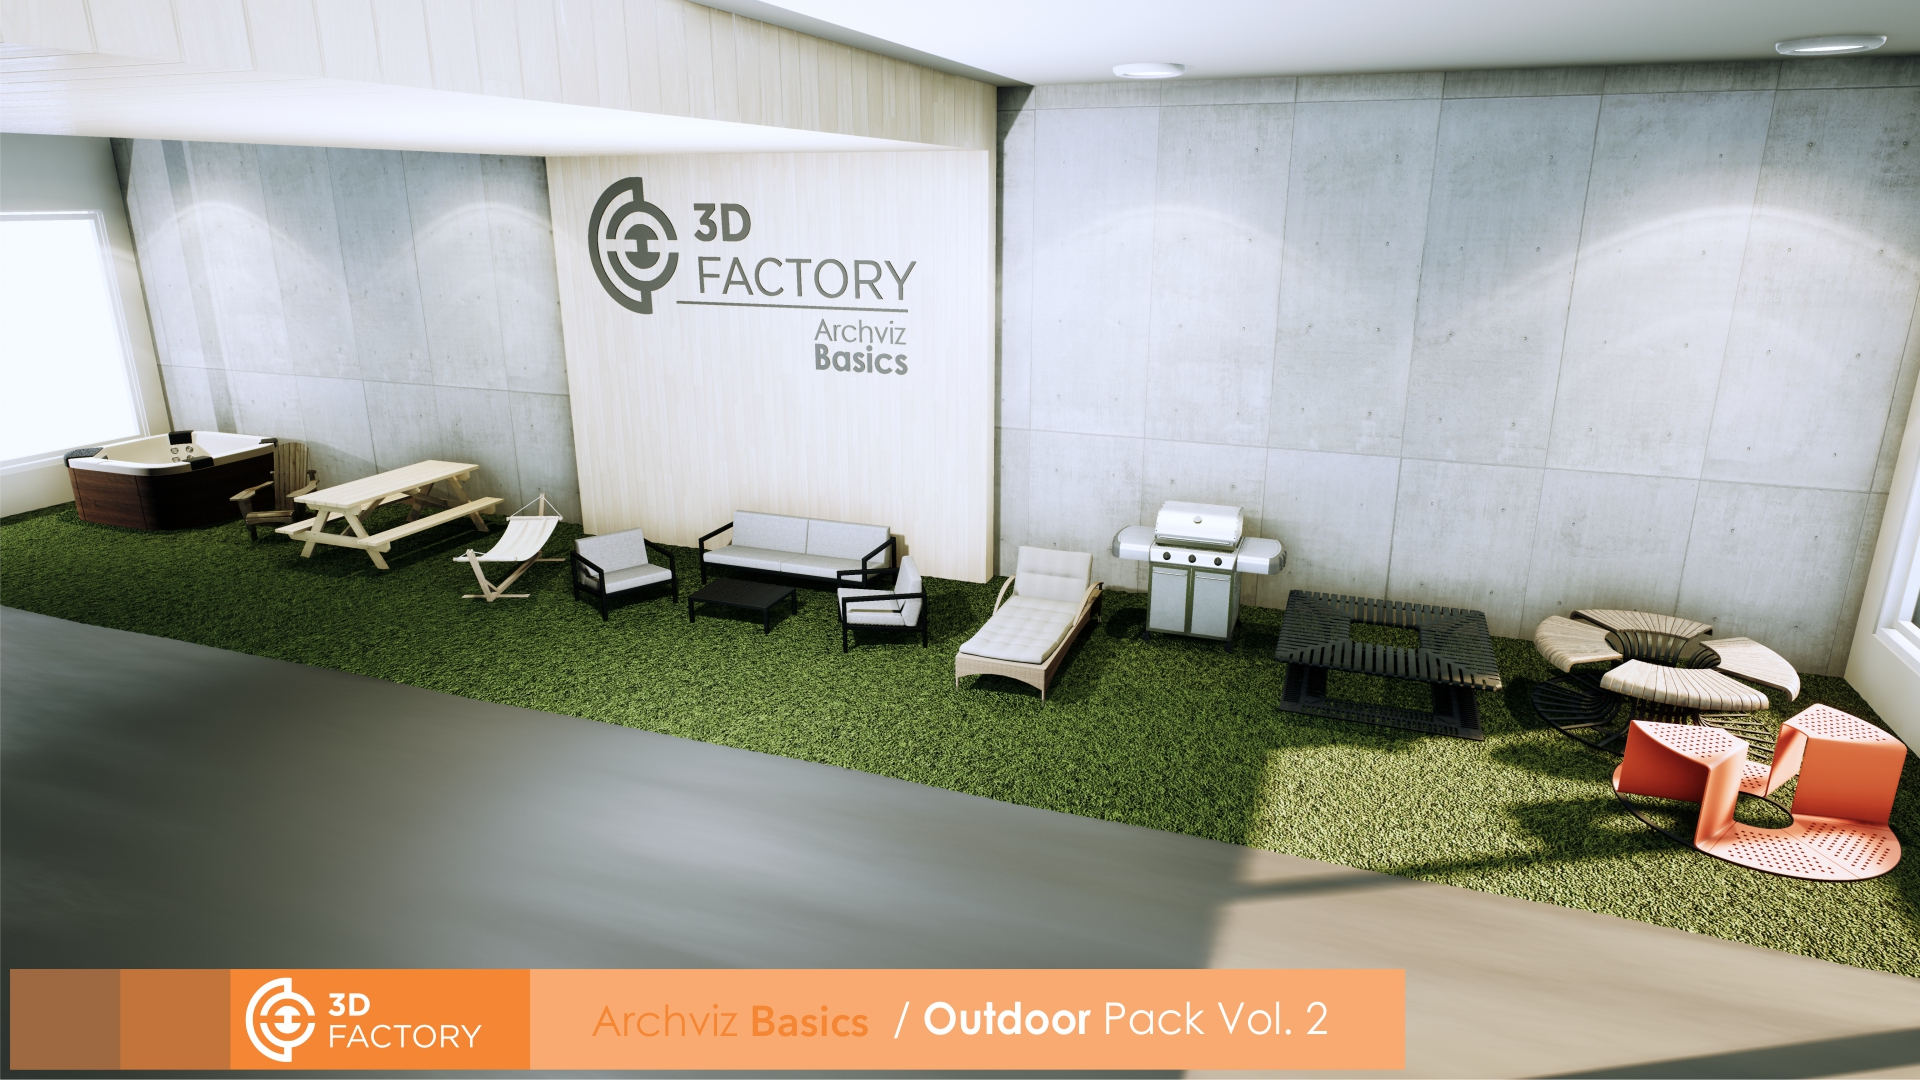 ArchViz Basics - Outdoor - Pack Vol 2 by 3d factory in